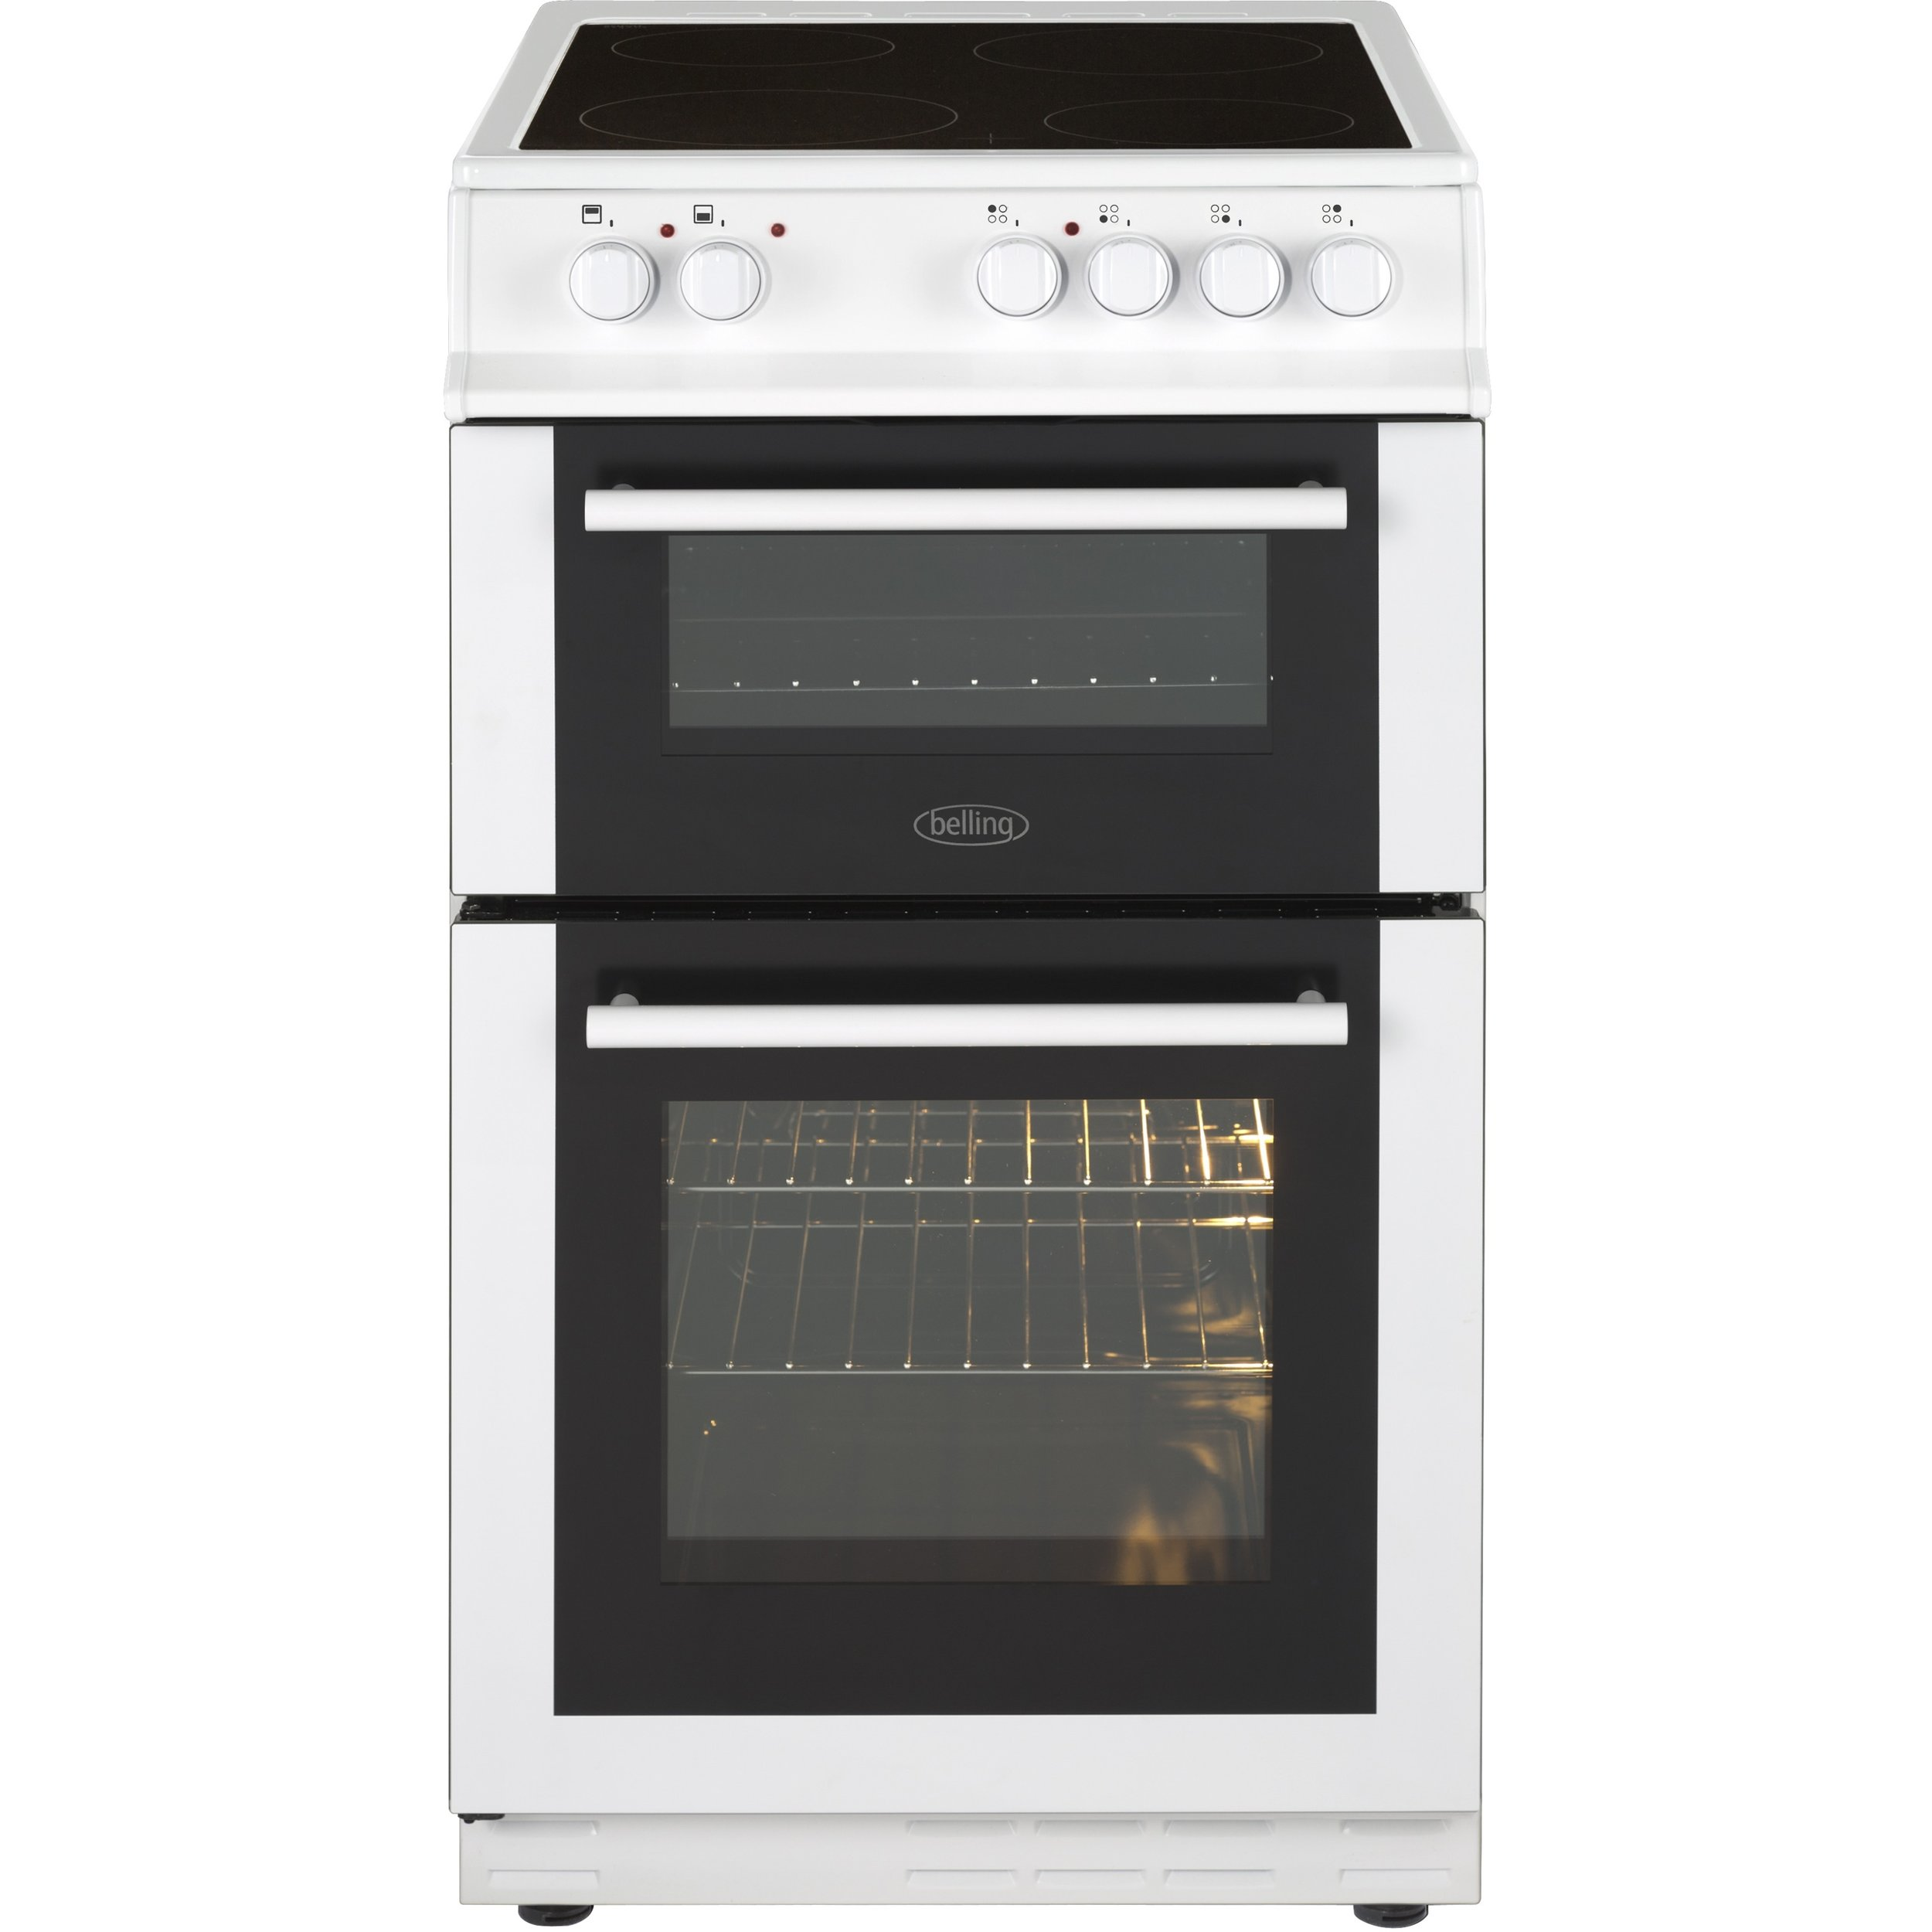 Belling 50cm Electric Cooker  Price:  £359.99   The Belling FS50EDOFCWHI electric cooker is 50 cm wide, which is perfect if space is limited. It is also freestanding, so you have the flexibility to position it wherever you like in your kitchen.   Buy now